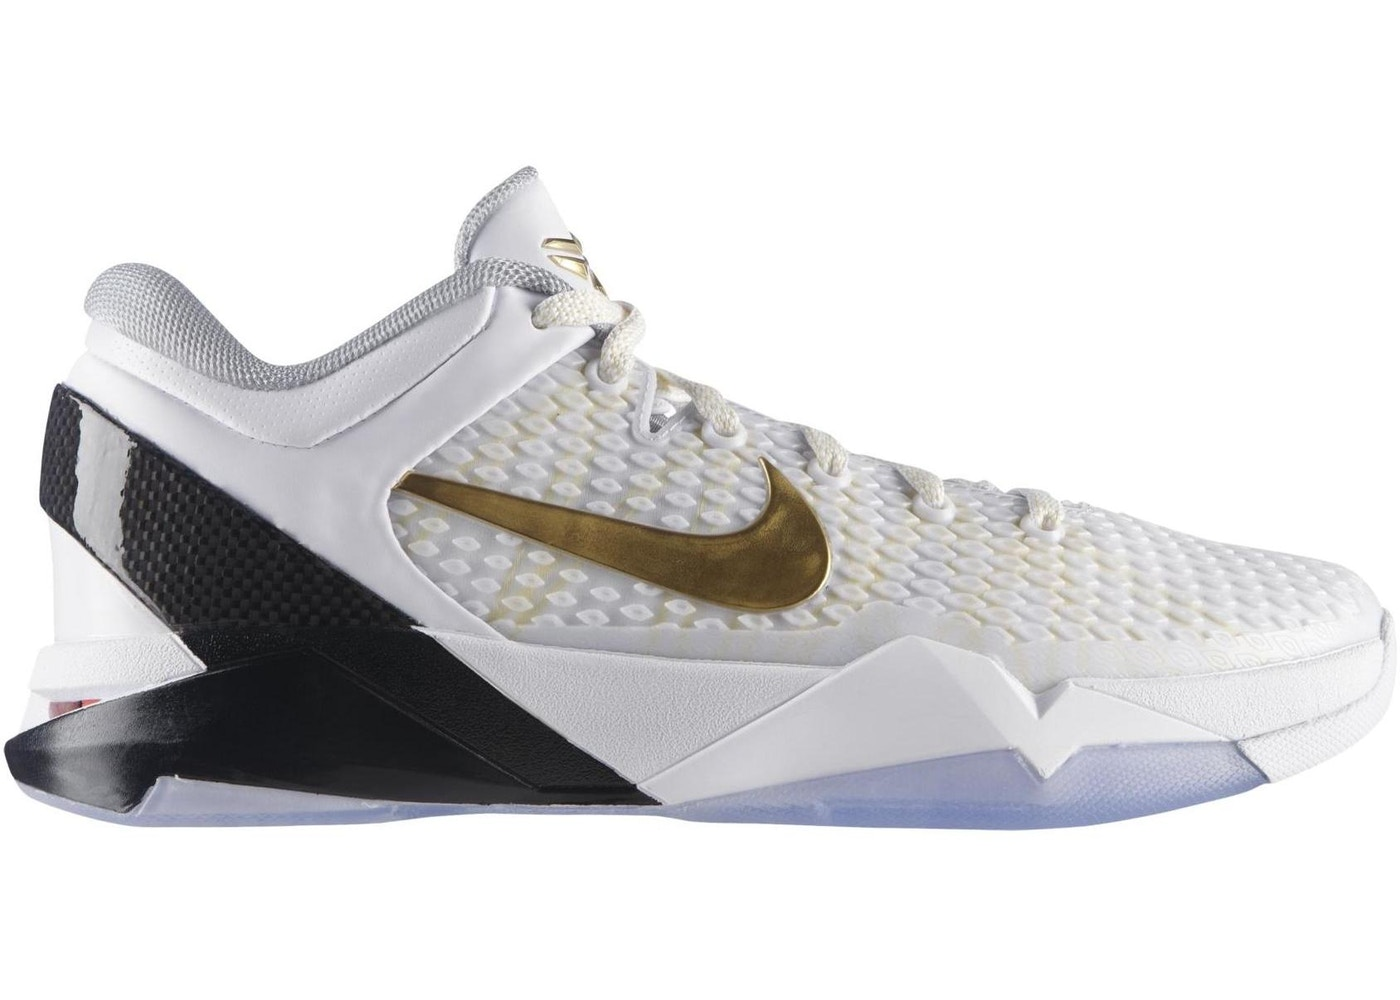 wholesale dealer c9d3d efaf3 Nike Kobe 7 Shoes - Release Date